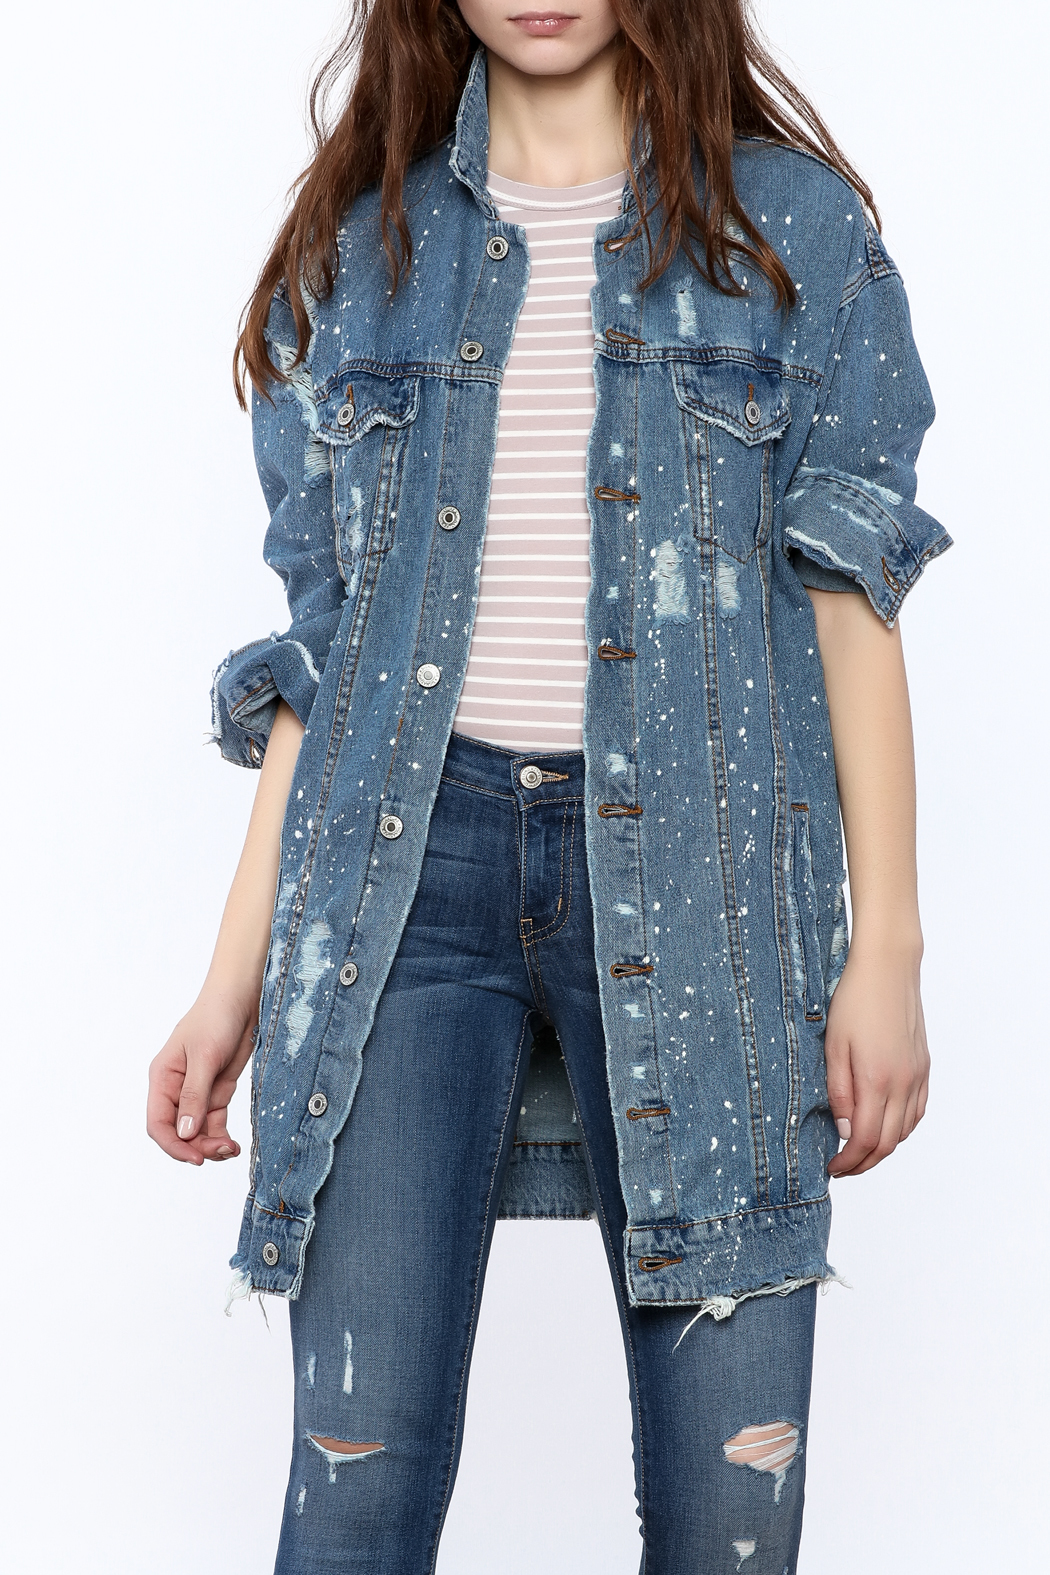 Signature 8 Long Denim Jacket From New York City By Angela I Am